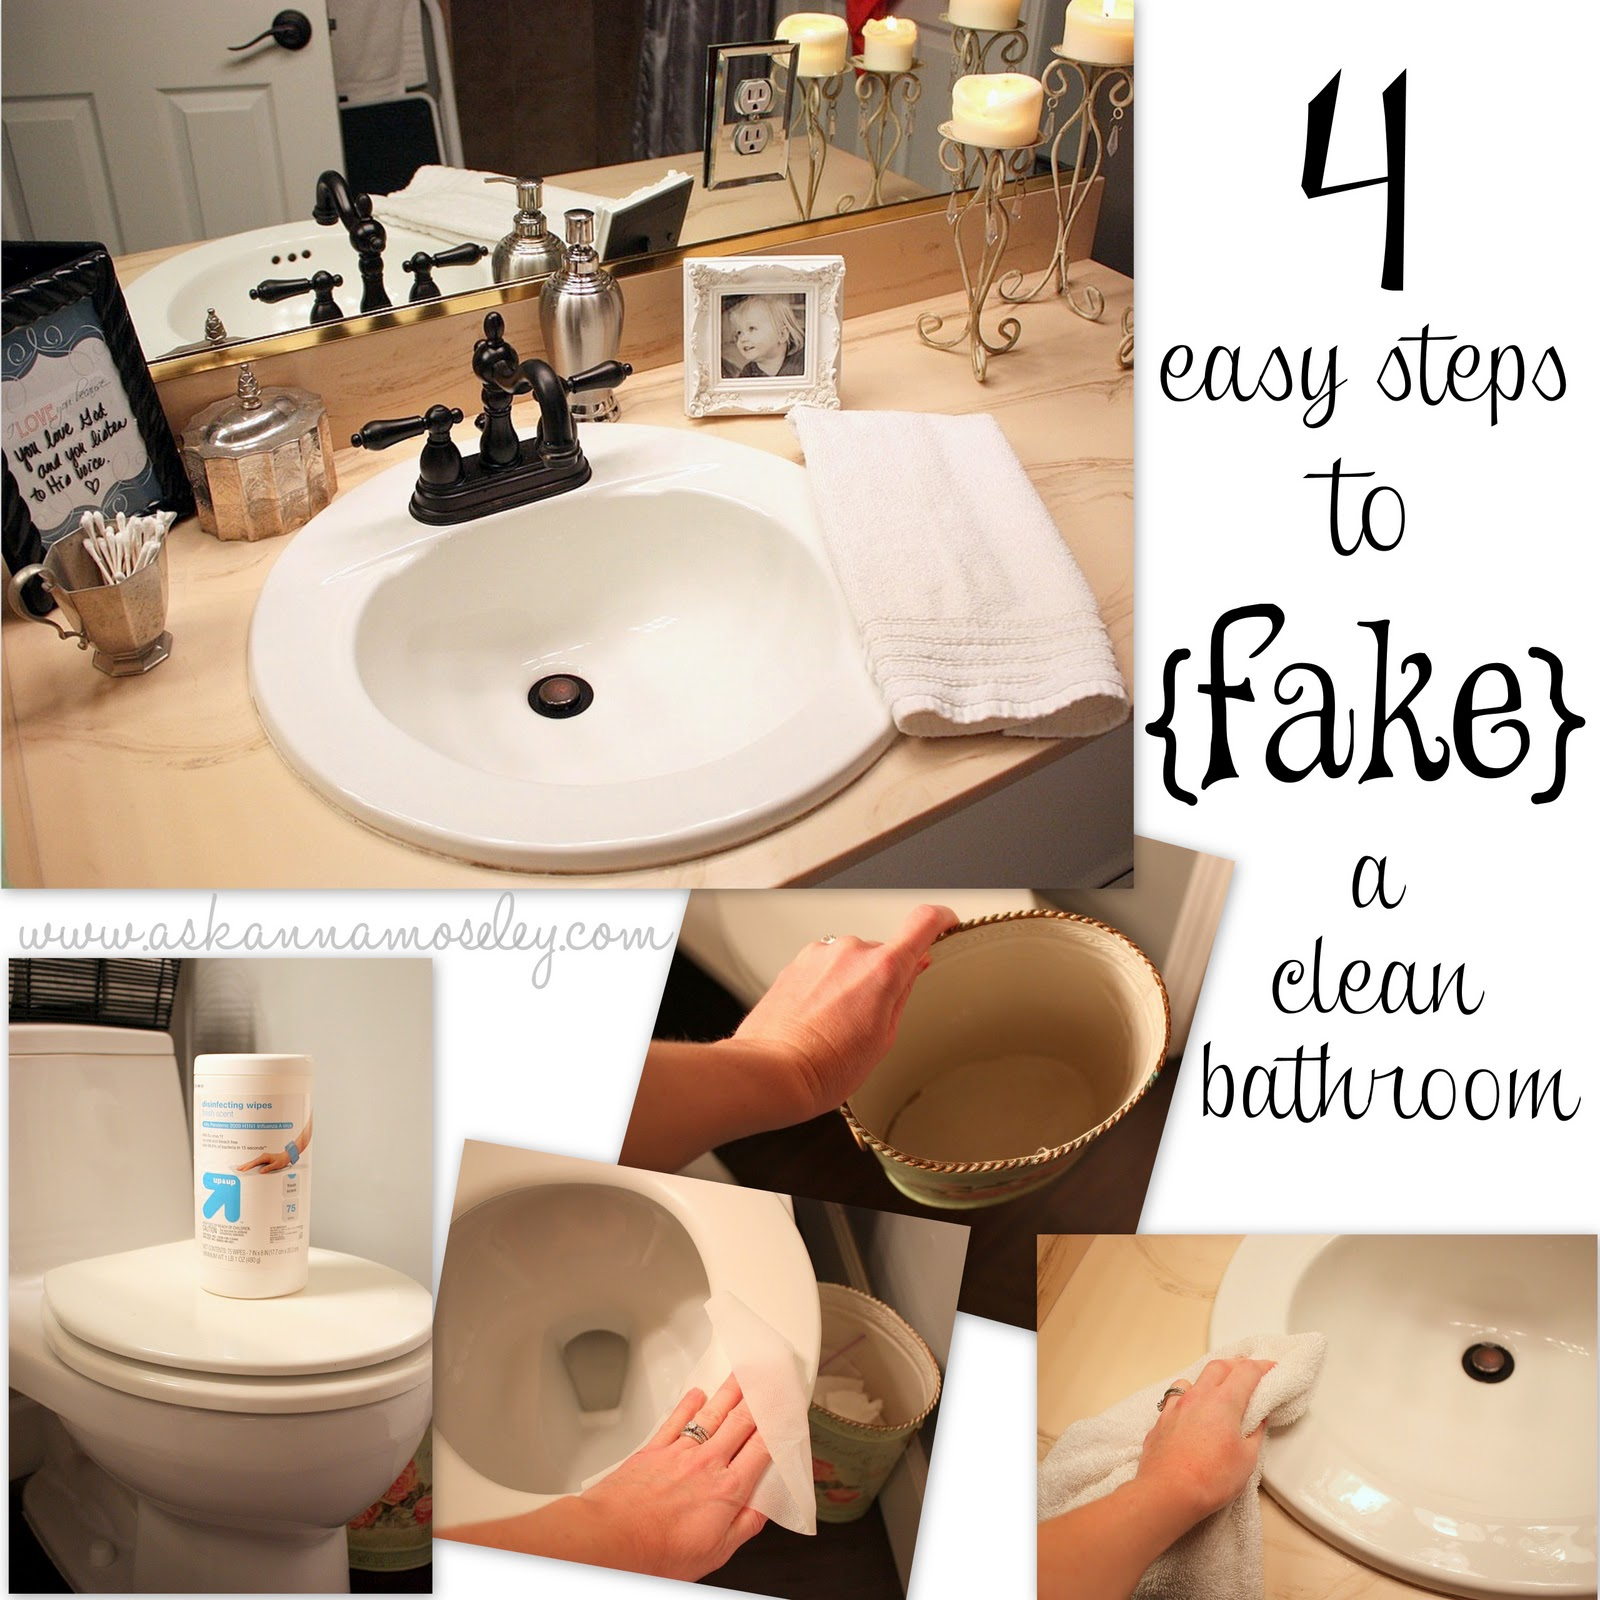 How To Fake A Clean Bathroom By My Guest Anna Organizing Made Fun How To Fake A Clean